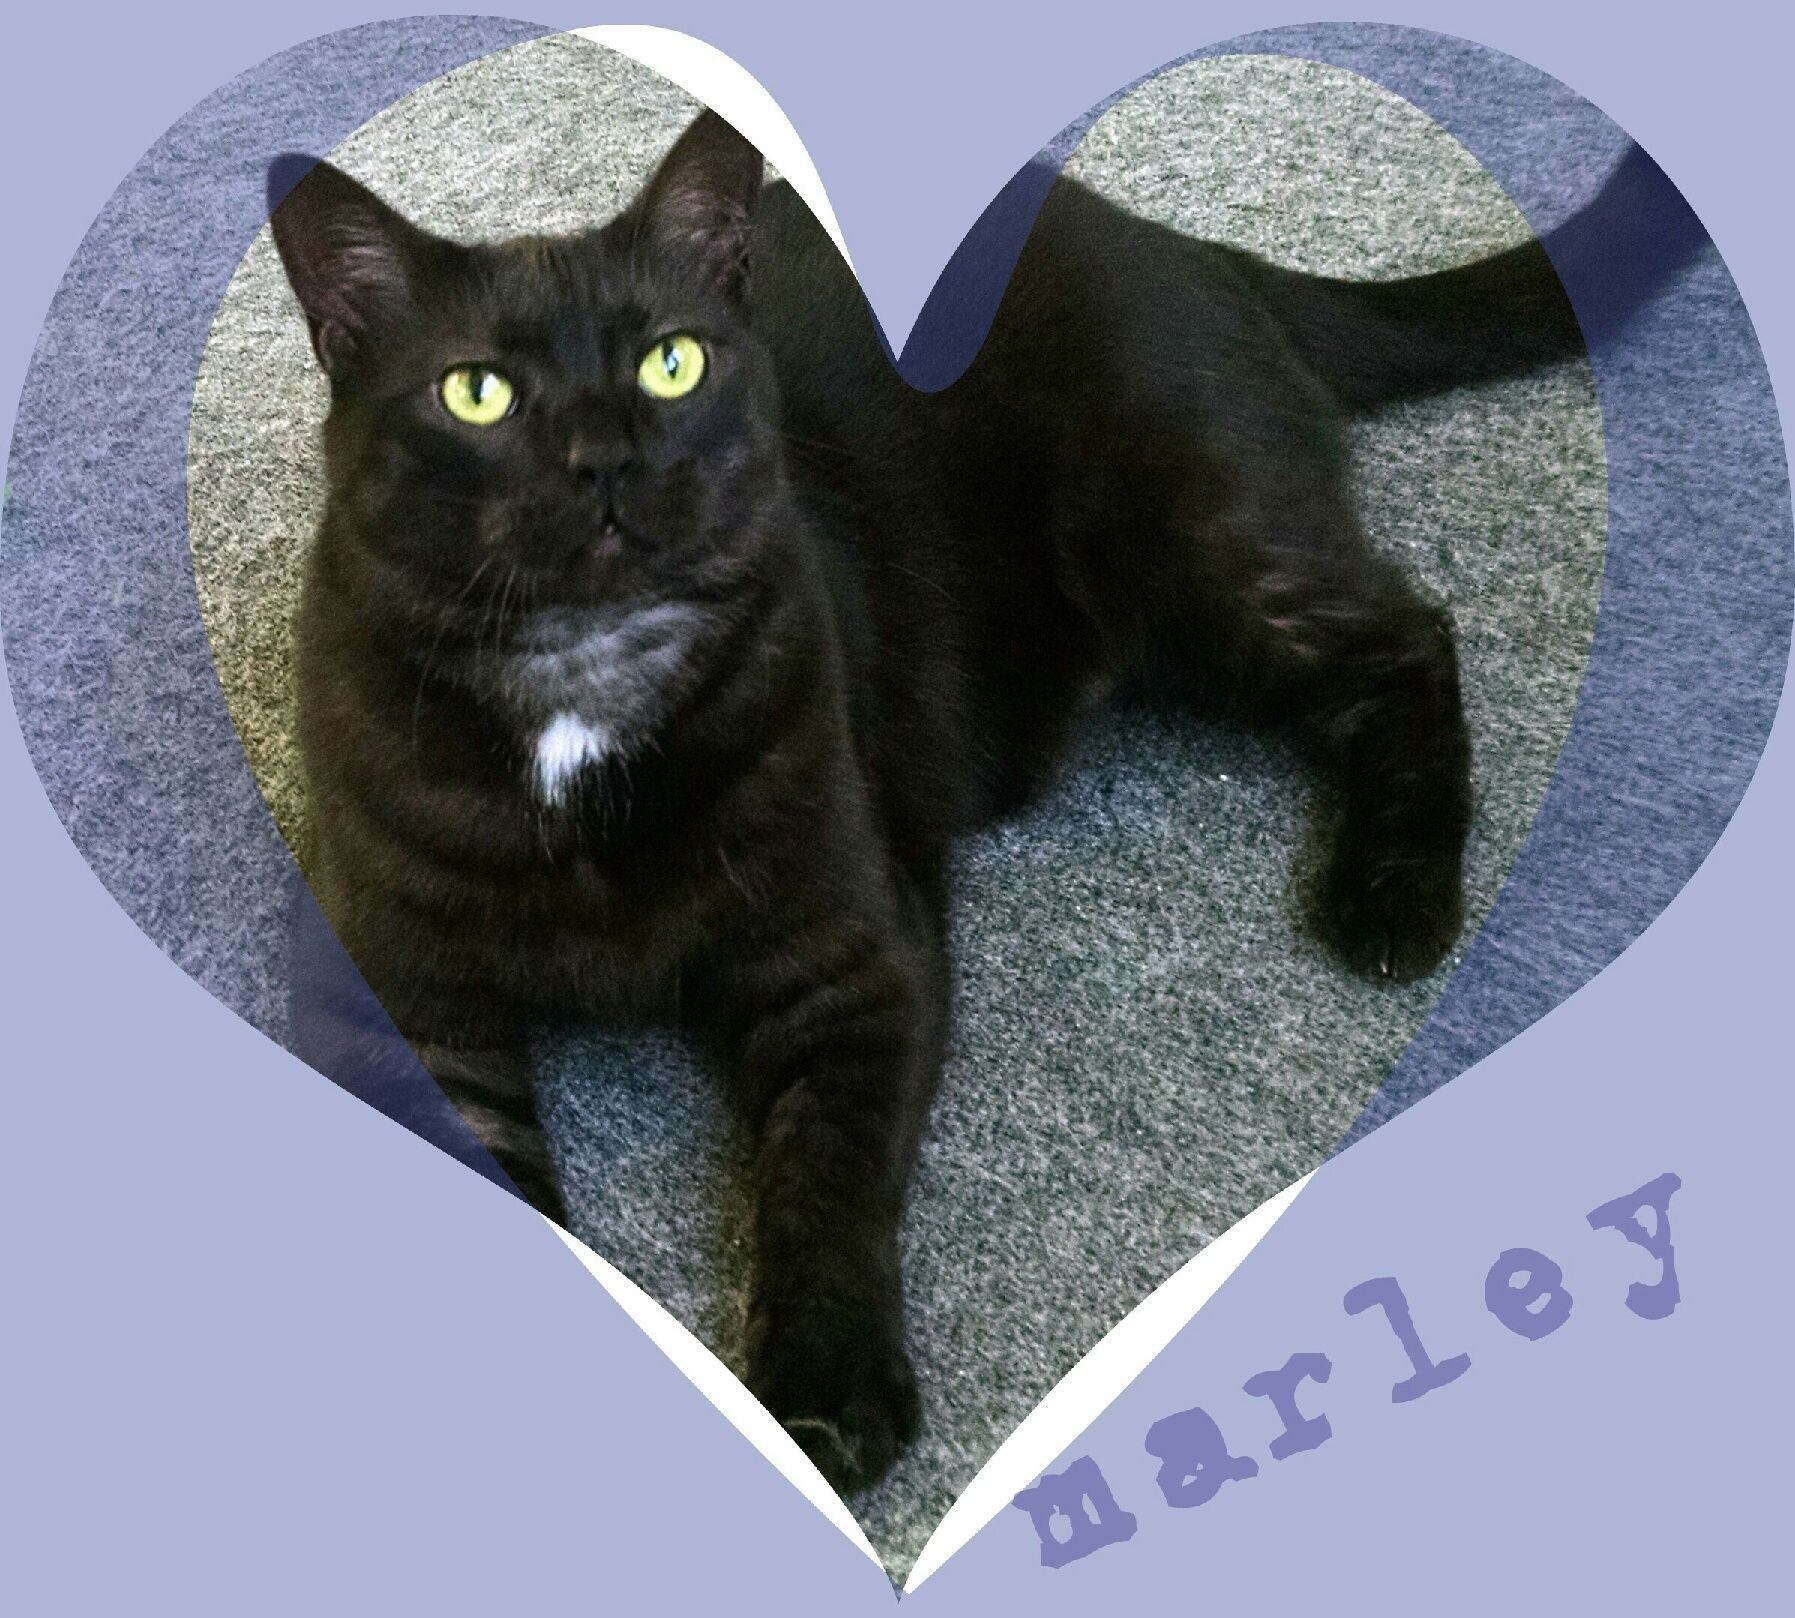 Adopt Marley bestcatever on Animal help, Cats, Pets